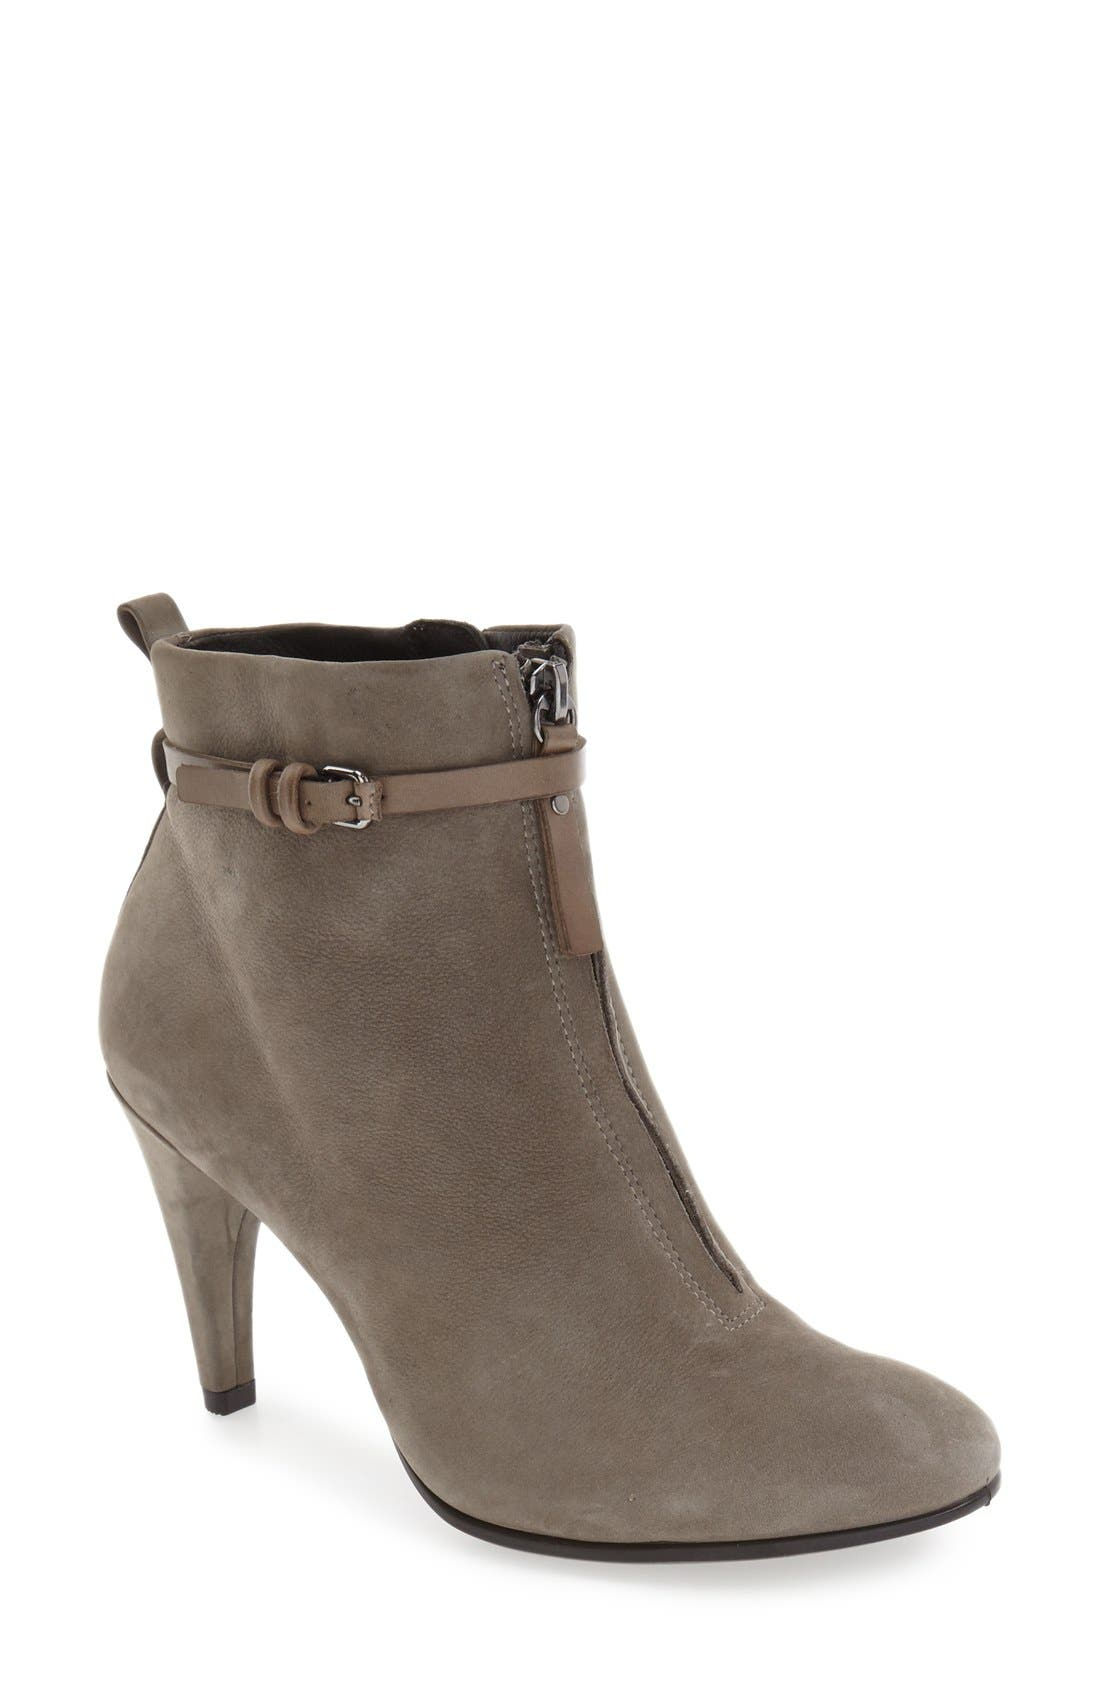 'Shape 75' Bootie,                             Main thumbnail 1, color,                             Warm Grey Nubuck Leather